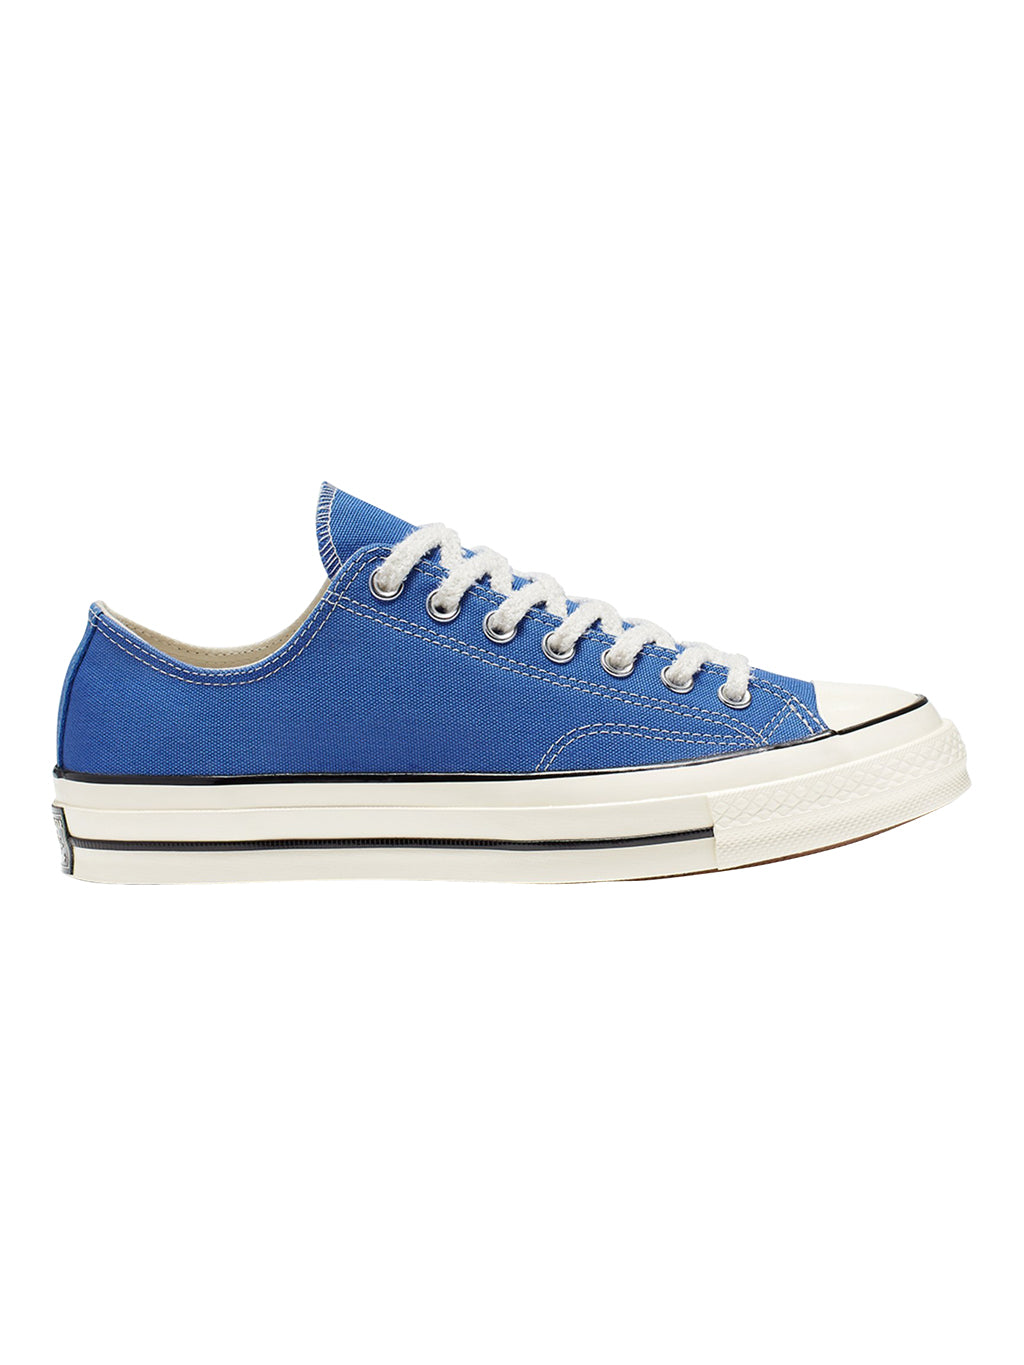 Ozone Blue Chuck 70 Ox Sneakers